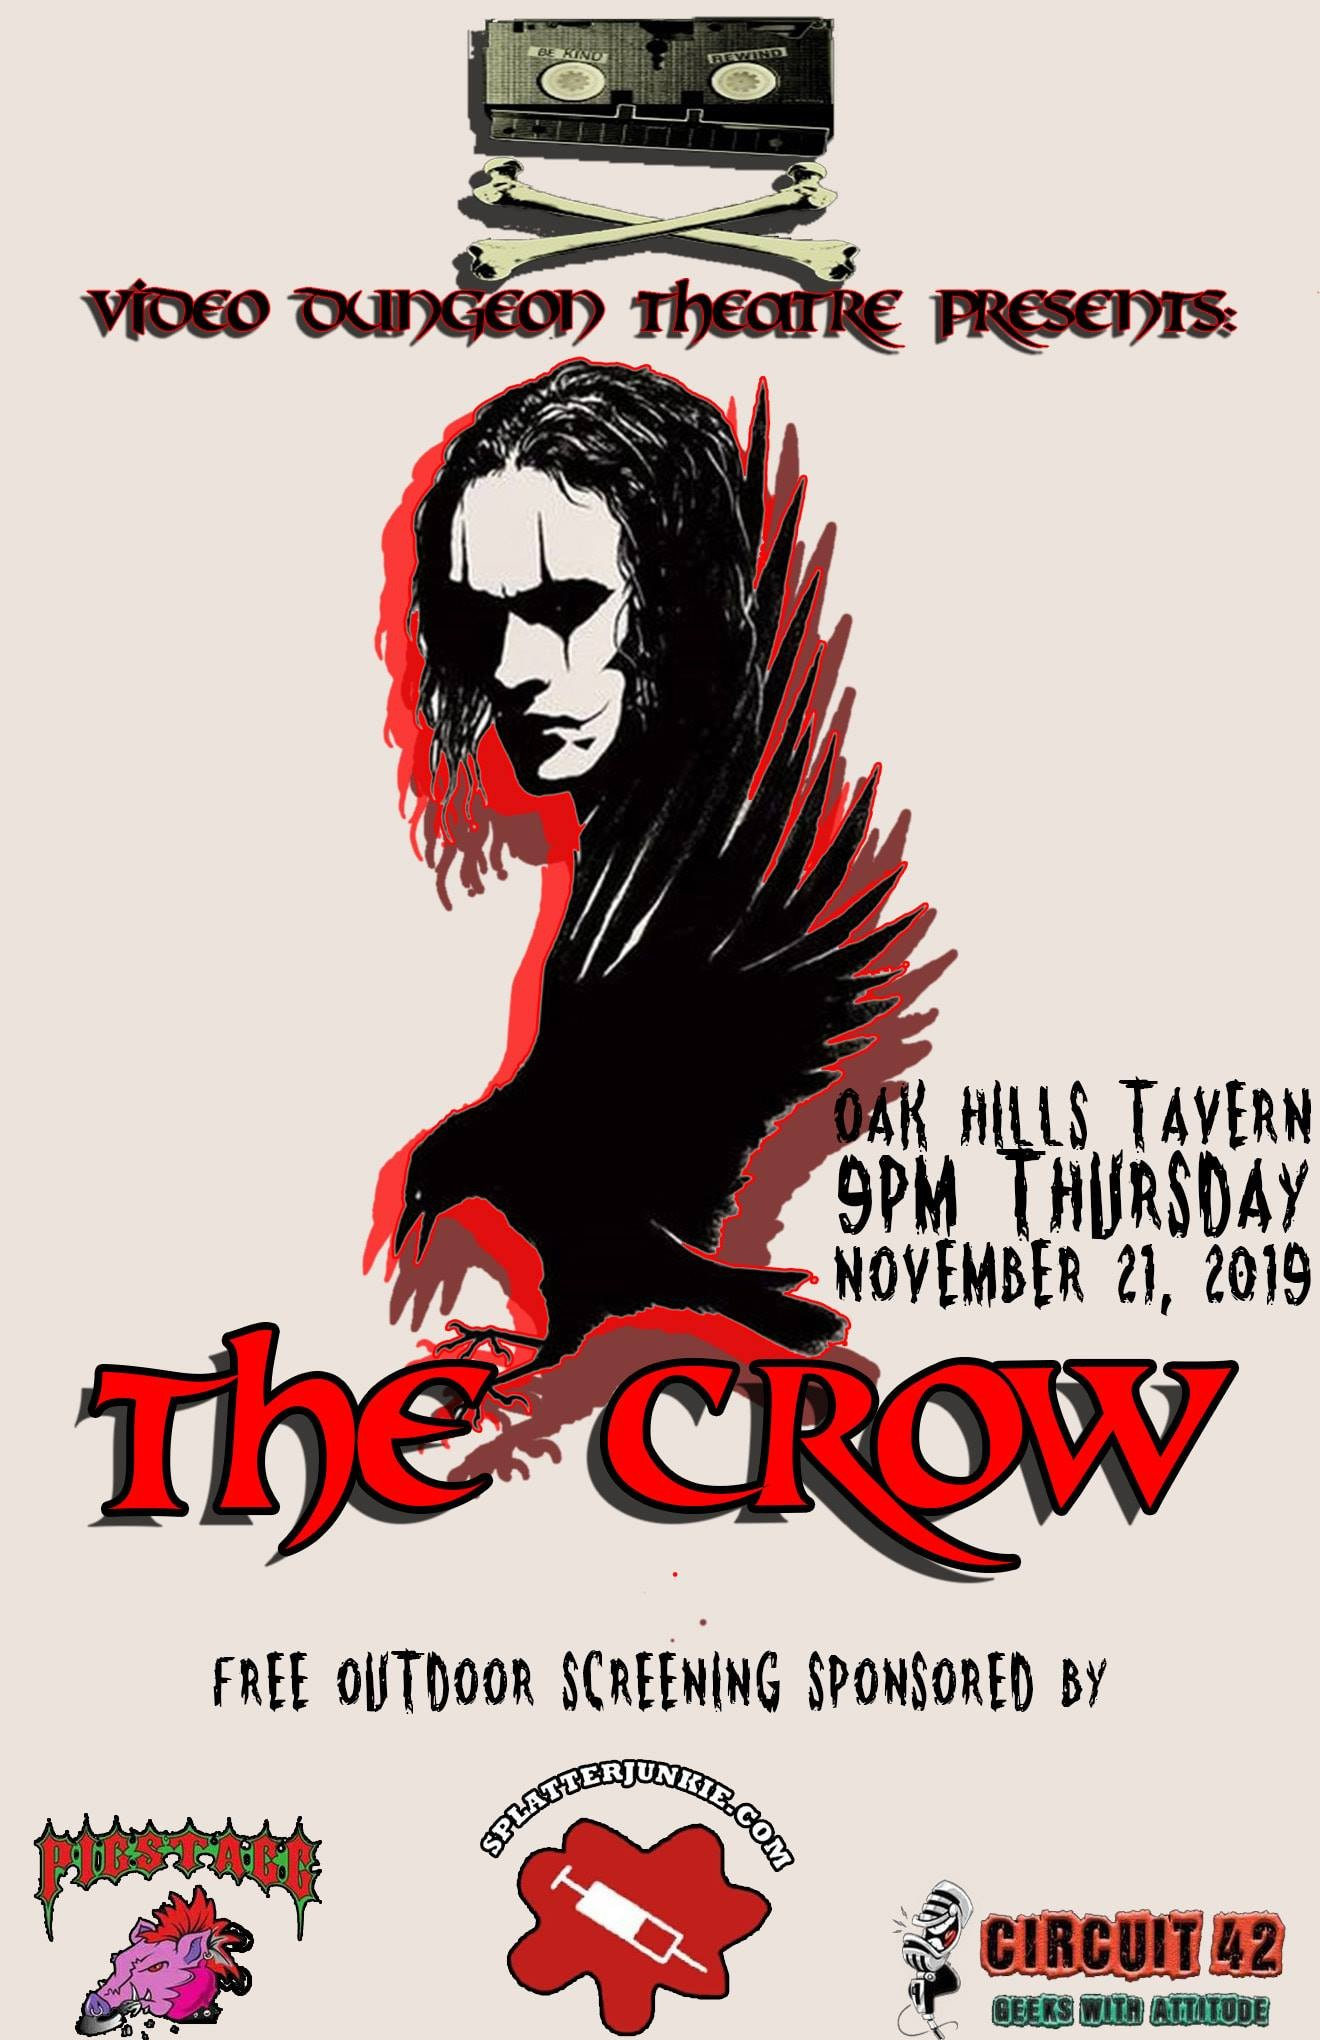 Video Dungeon Theatre Will Resurrect Brandon Lee on Thursday with a Free Screening of The Crow